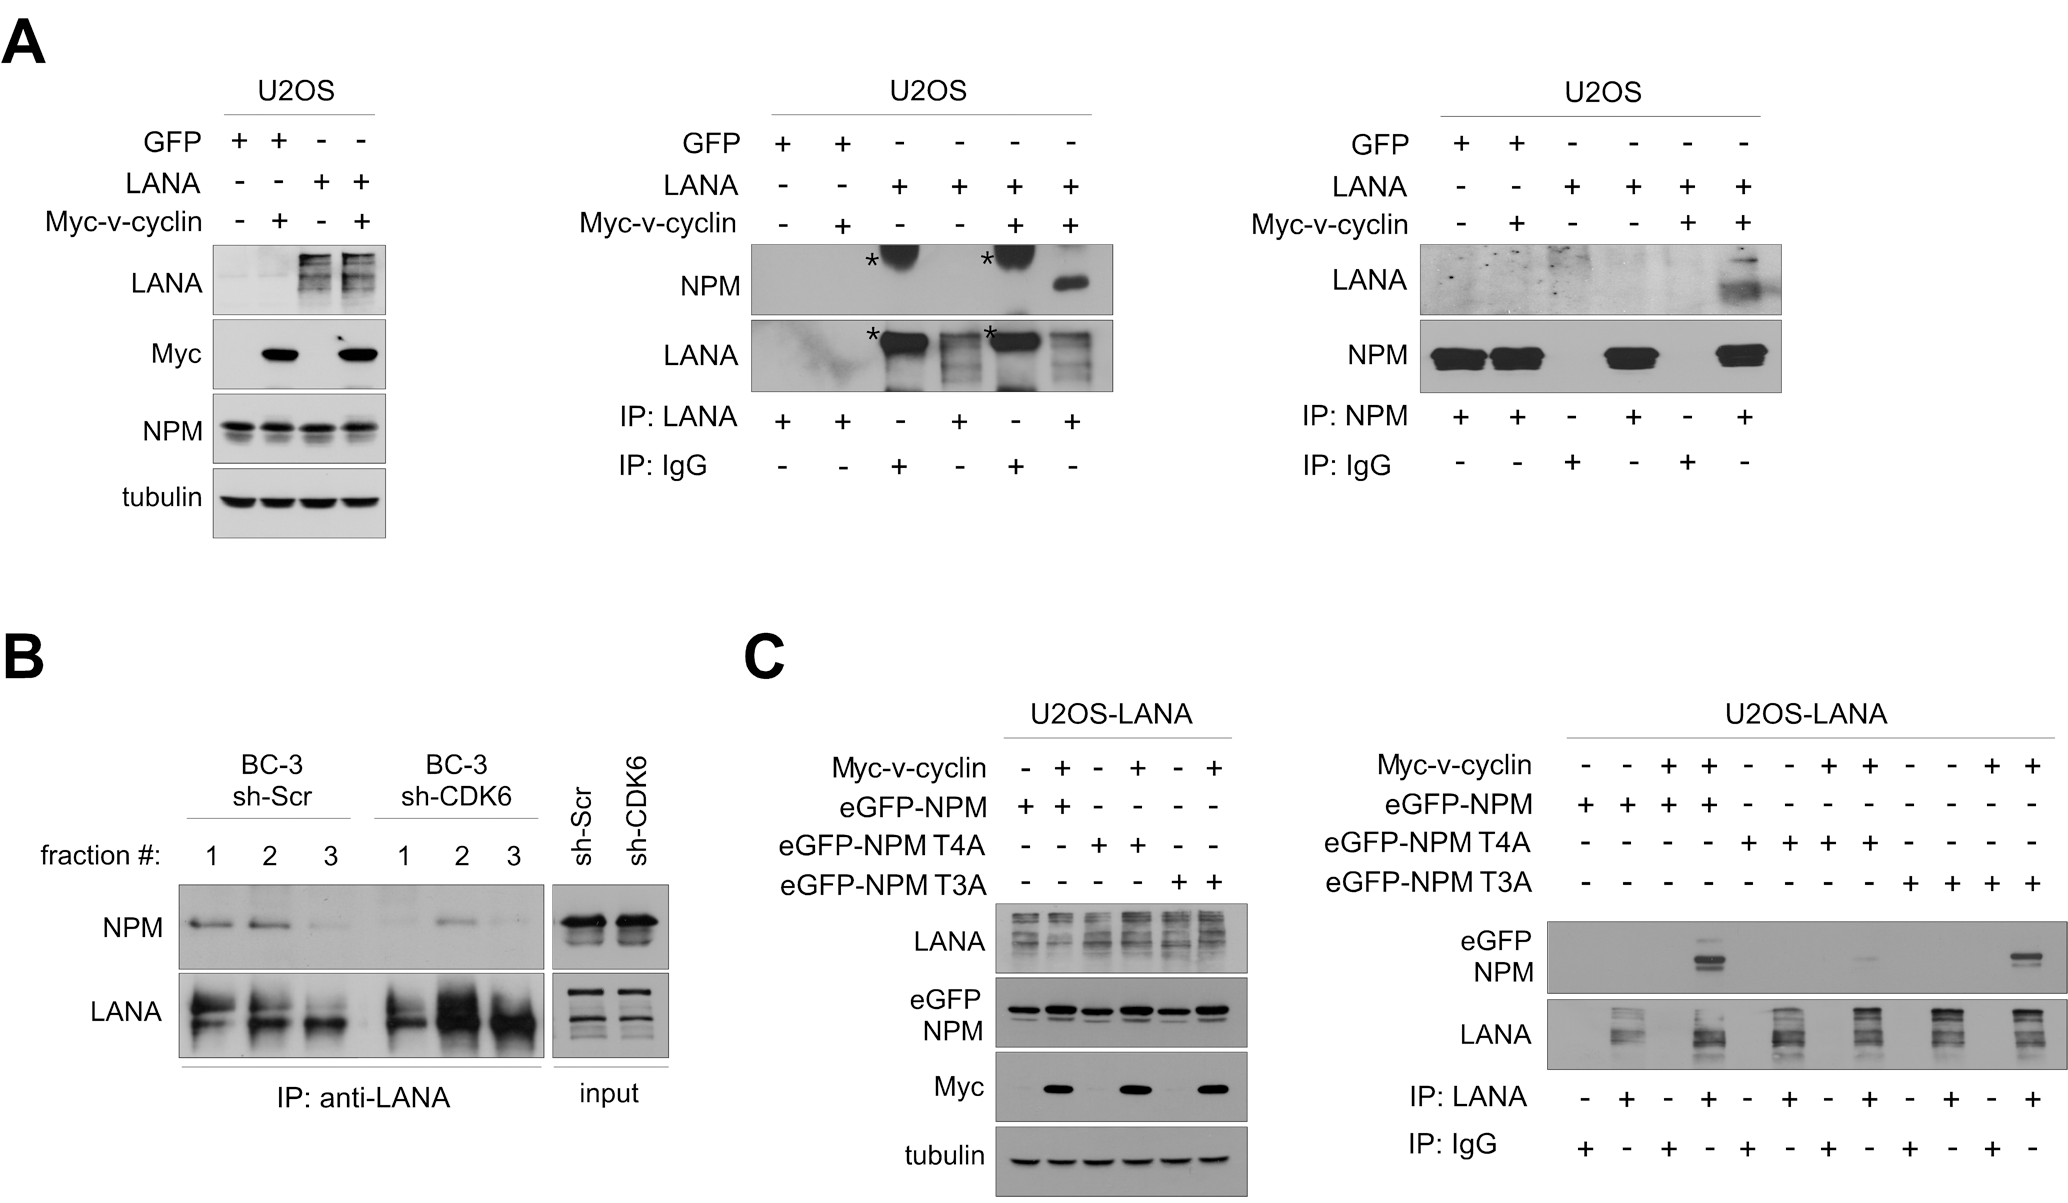 NPM interaction with LANA is dependent on Thr199 phosphorylation of NPM by v-cyclin-CDK6.